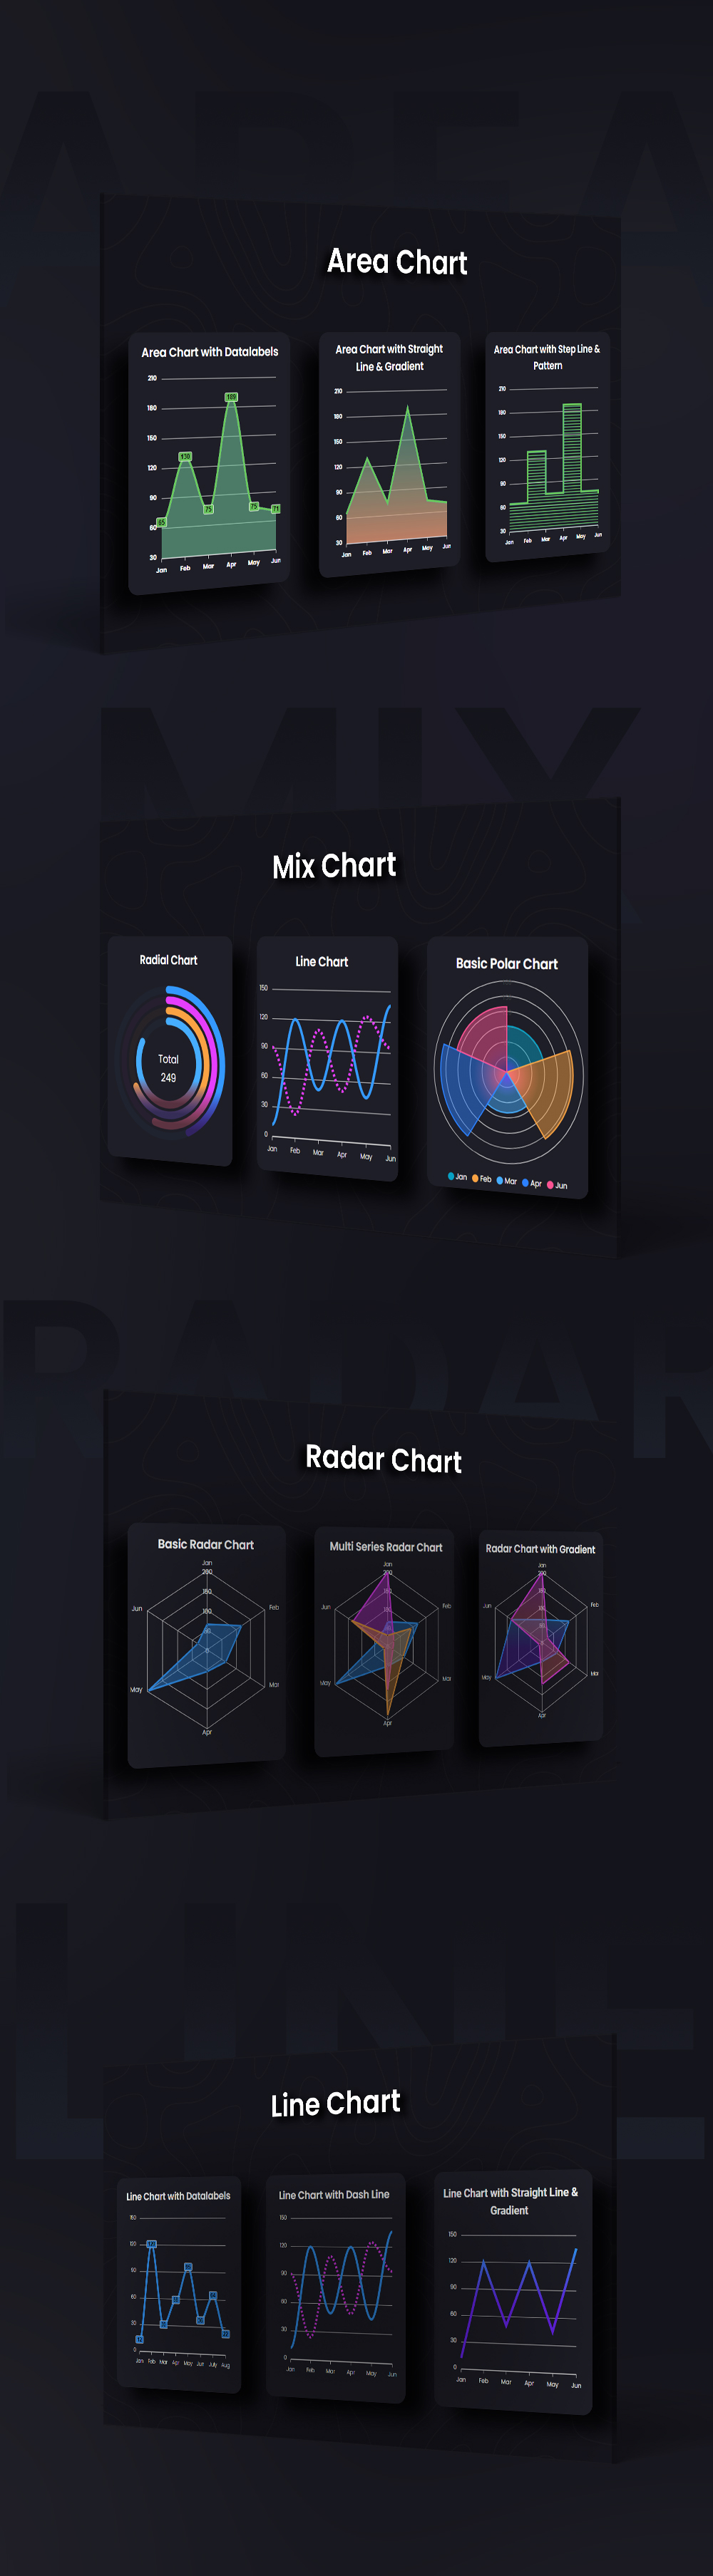 Wordpress plugin for apex charts | Graphina Pro | Iqonic Design elementor dynamic charts graphs and datatables Graphina Pro 3